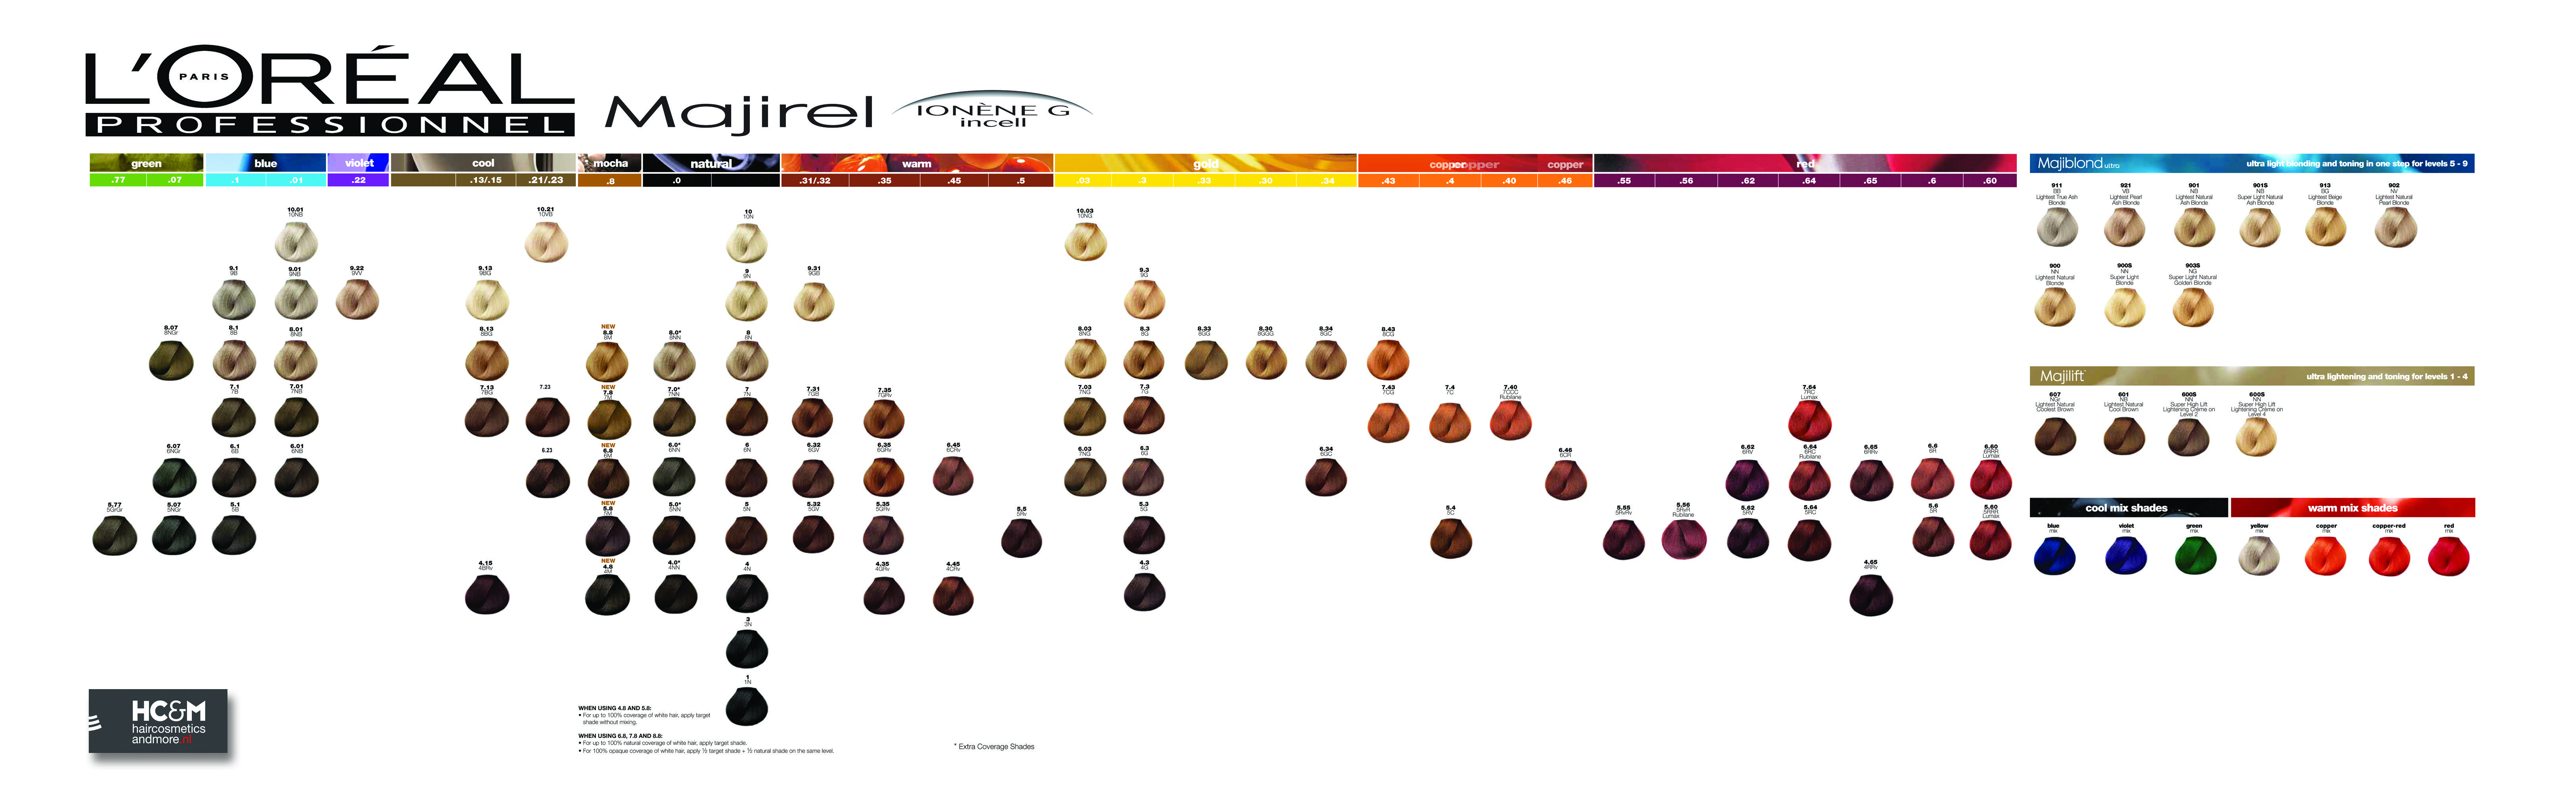 Majirel colour chart - L Or Al Professionnel Majirel Color Chart August